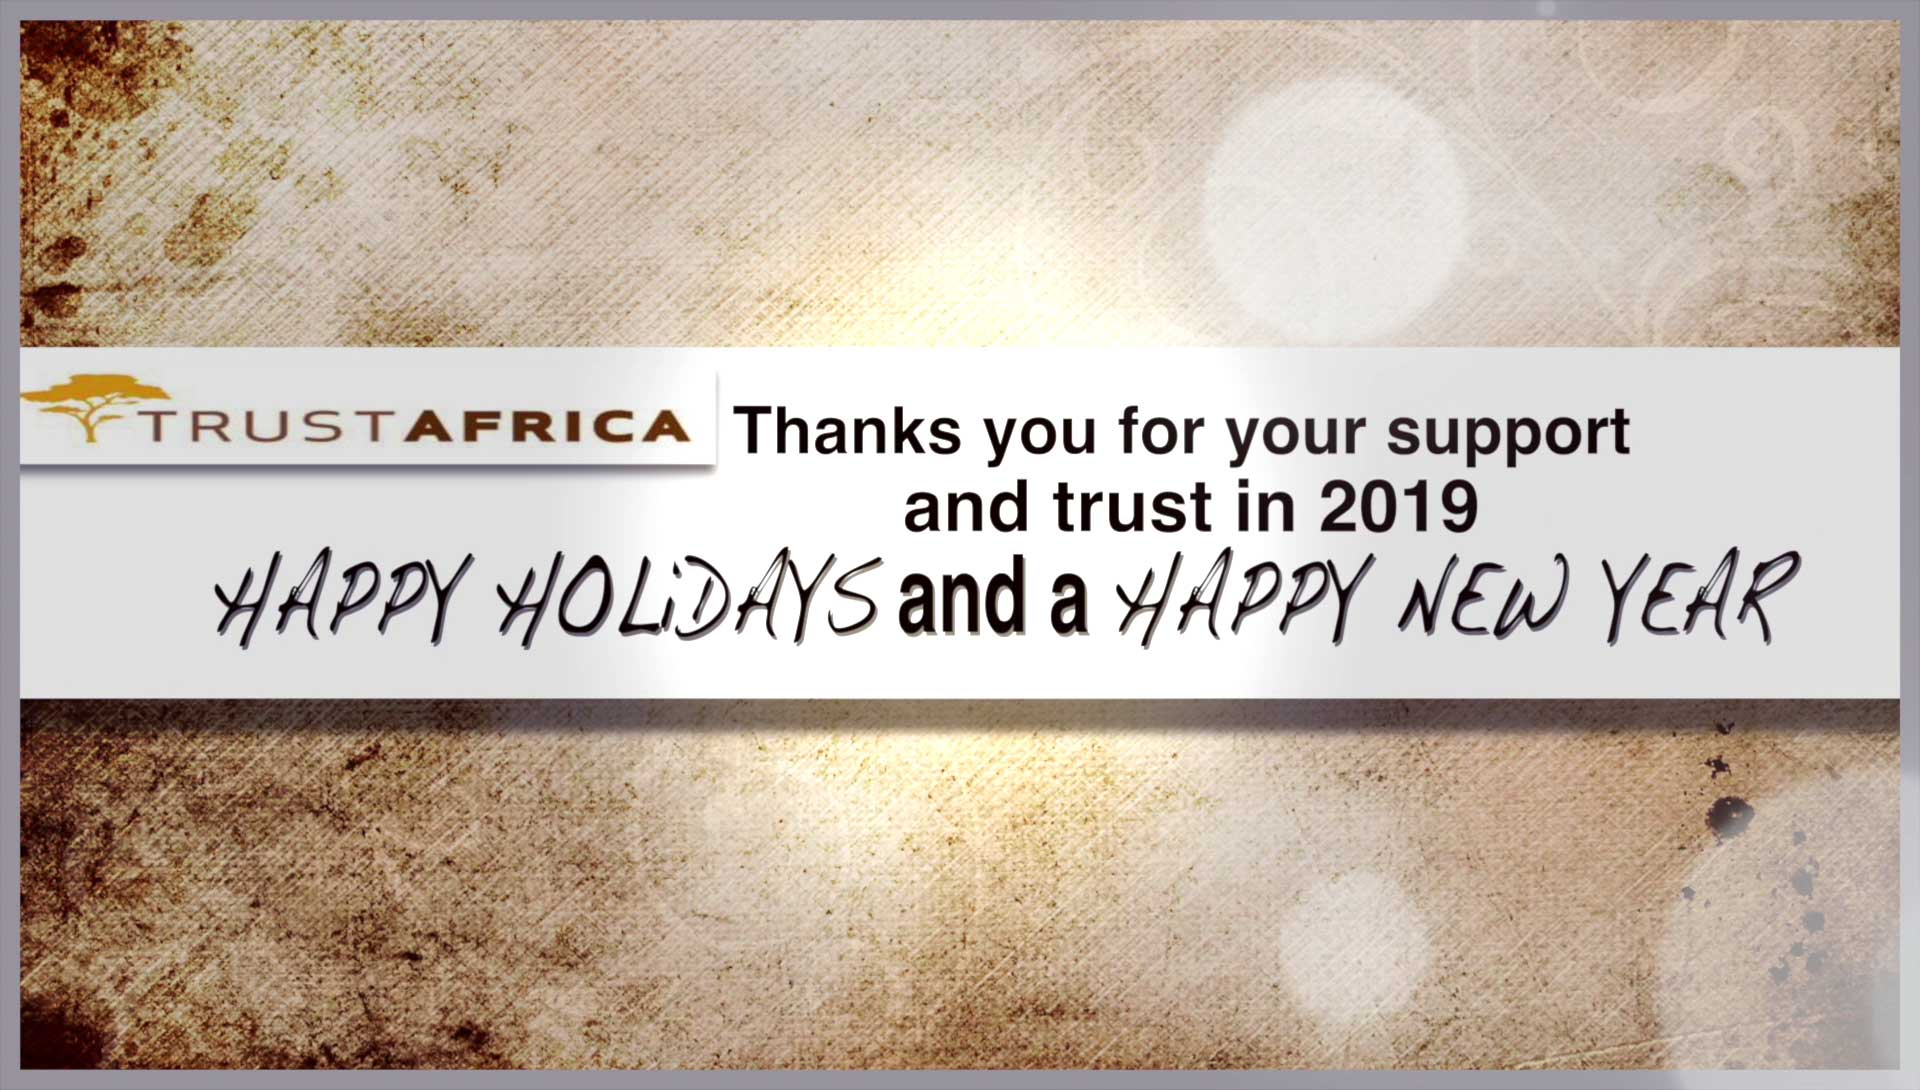 Thank you for your support and trust in 2019, HAPPY HOLIDAYS and a HAPPY NEW YEAR